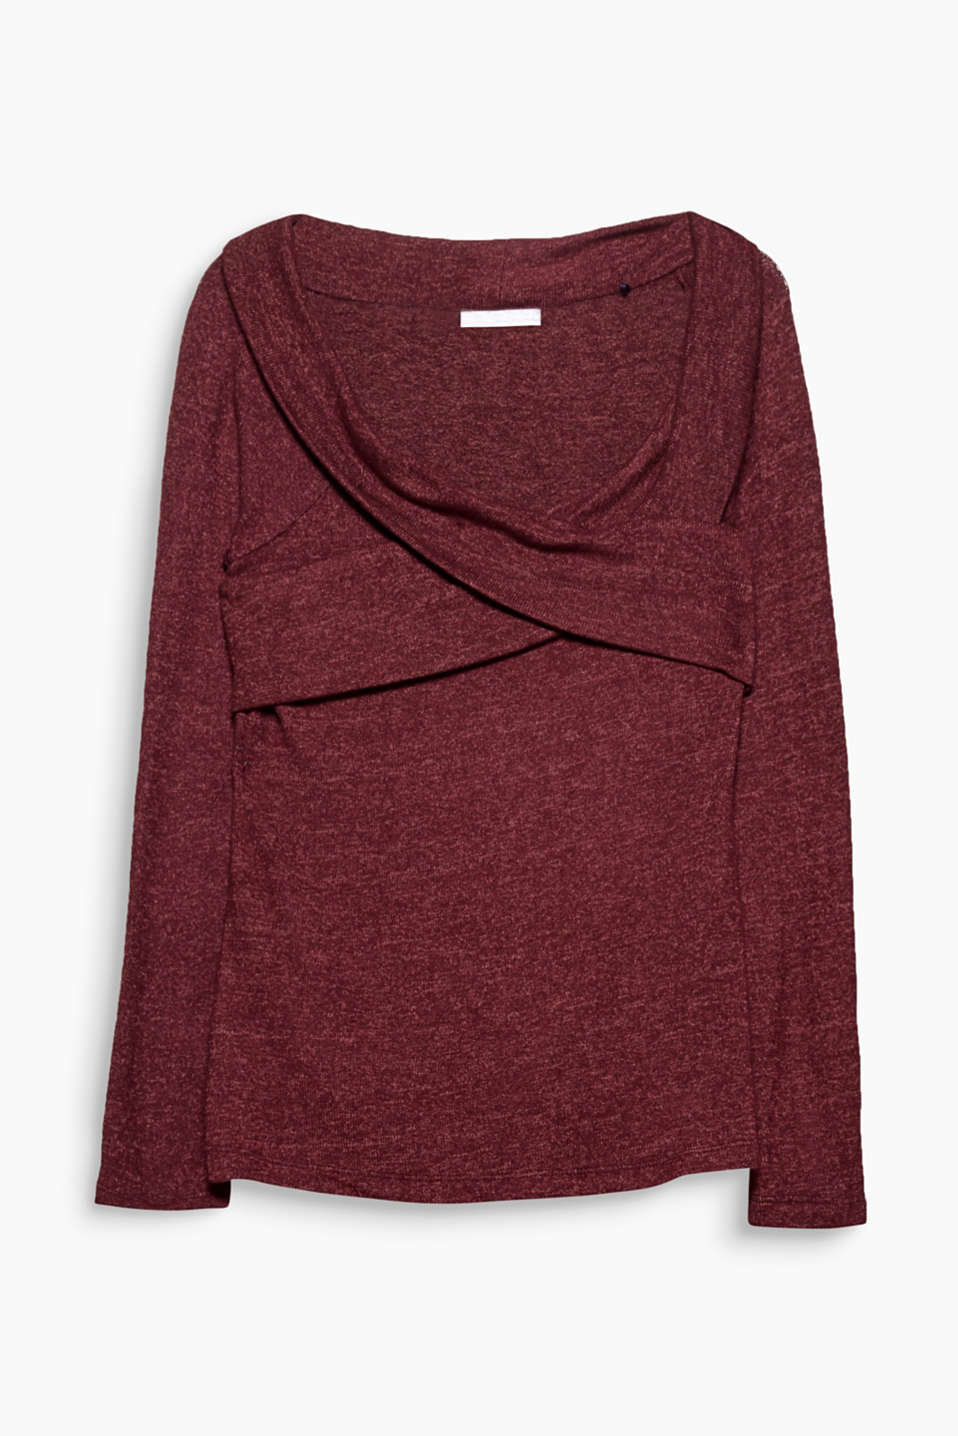 The trend of the summer made suitable for winter: off-shoulder top in super soft, warm stretch jersey.